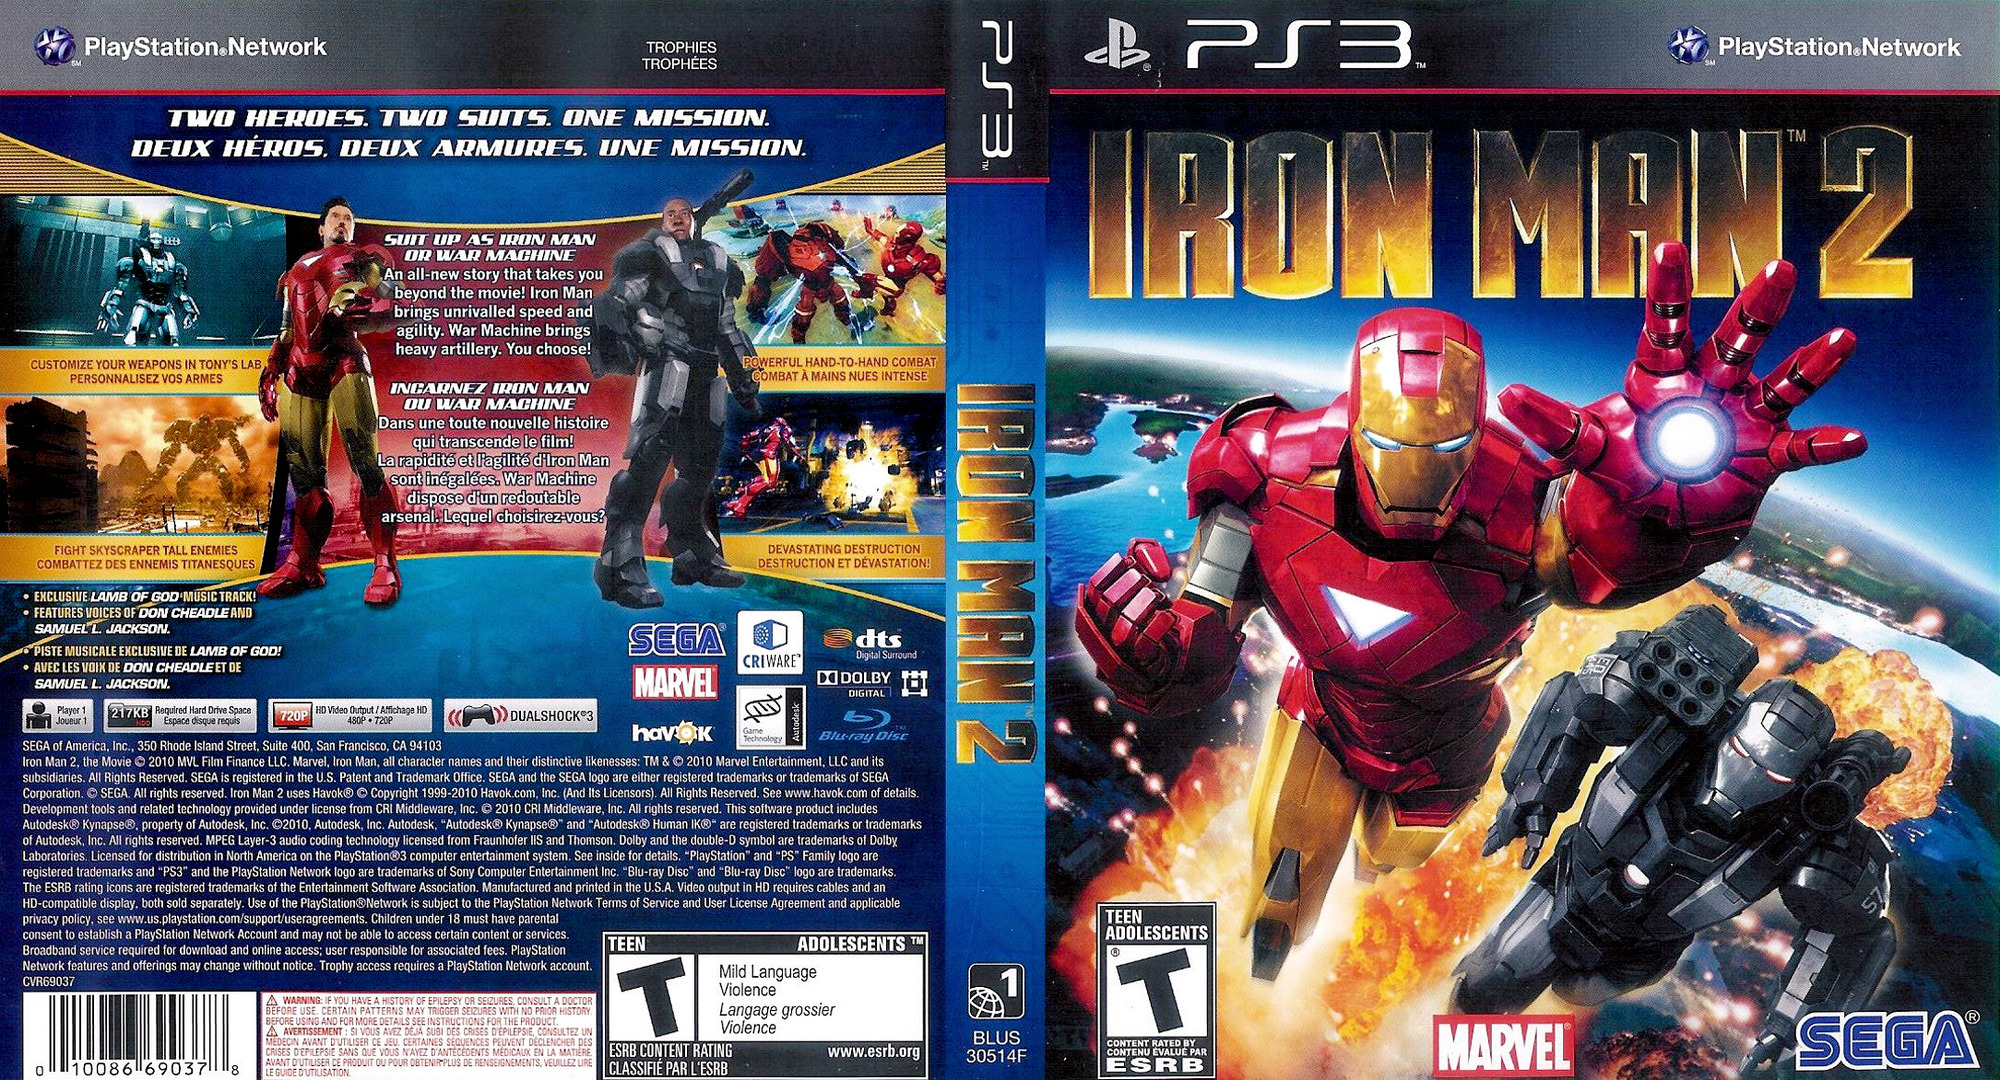 Iron man 2 the game ps3 part 1 sonic rivals 2 game online